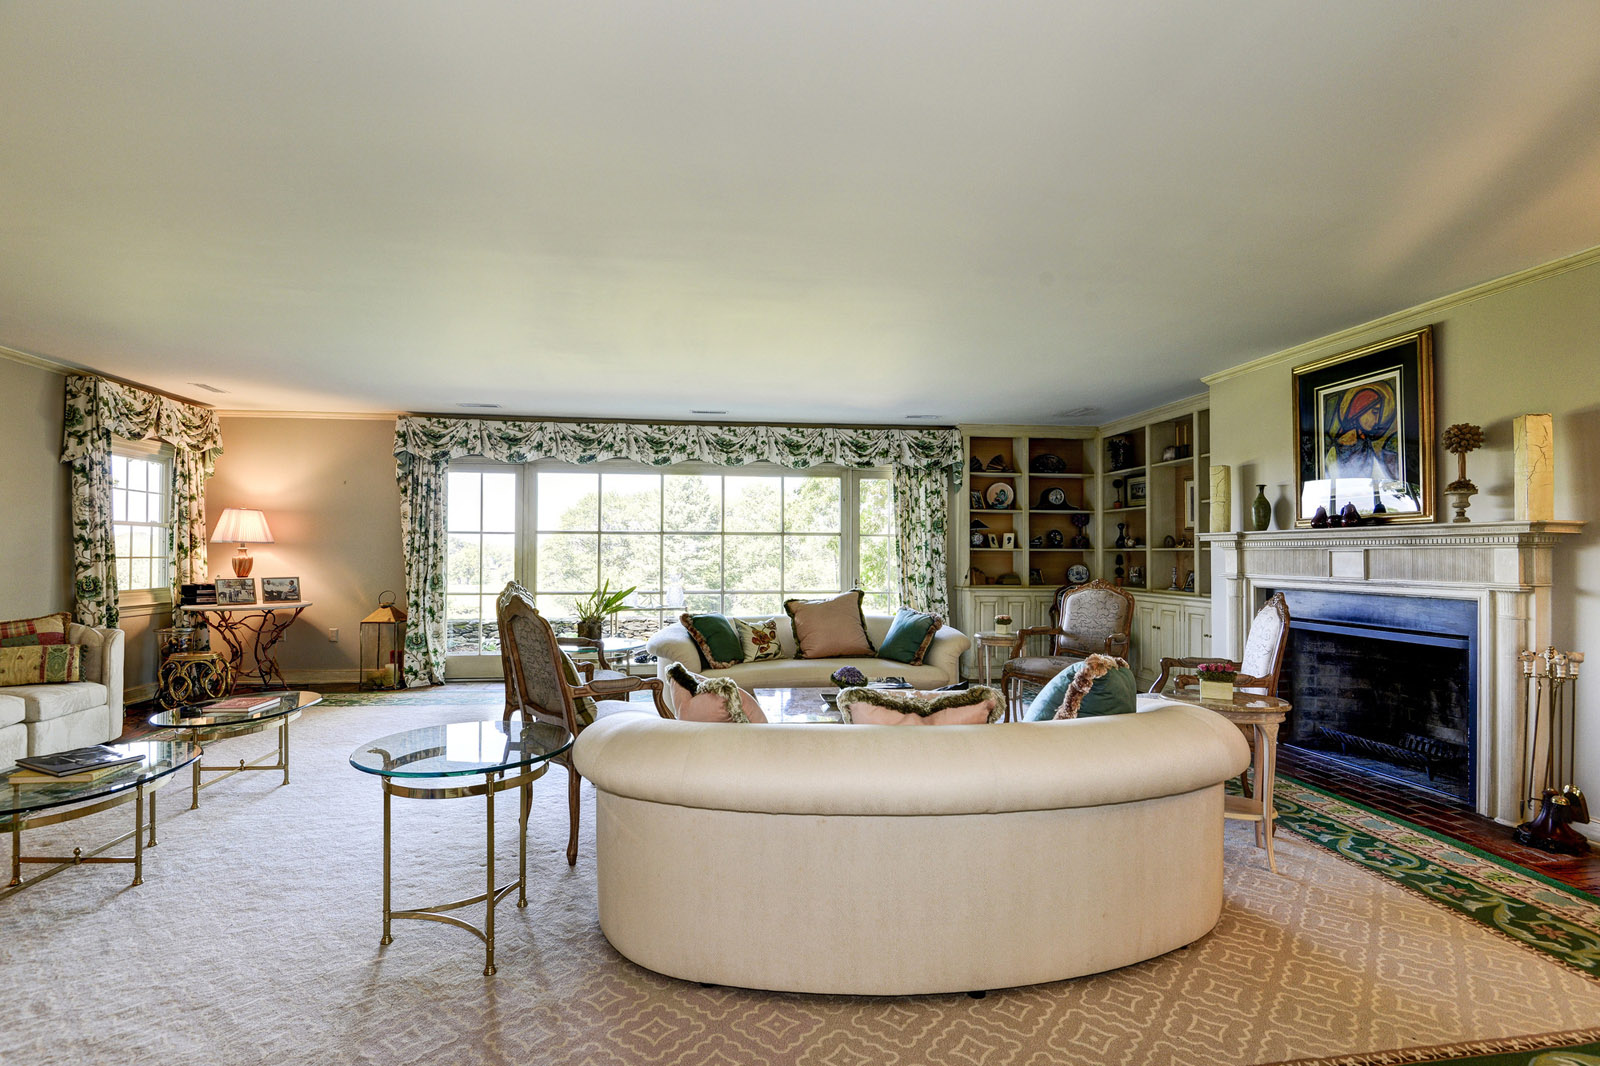 This photo provided by Thomas and Talbot Real Estate shows the living inside the 5,000-square-foot house at the Wexford Estate, the 1963 retreat that Jacqueline Kennedy Onassis designed for her family. The home is nestled on more than 166 acres in Virginia's hunt country.  (Courtesy Thomas and Talbot Real Estate and Mona Botwick Photography)